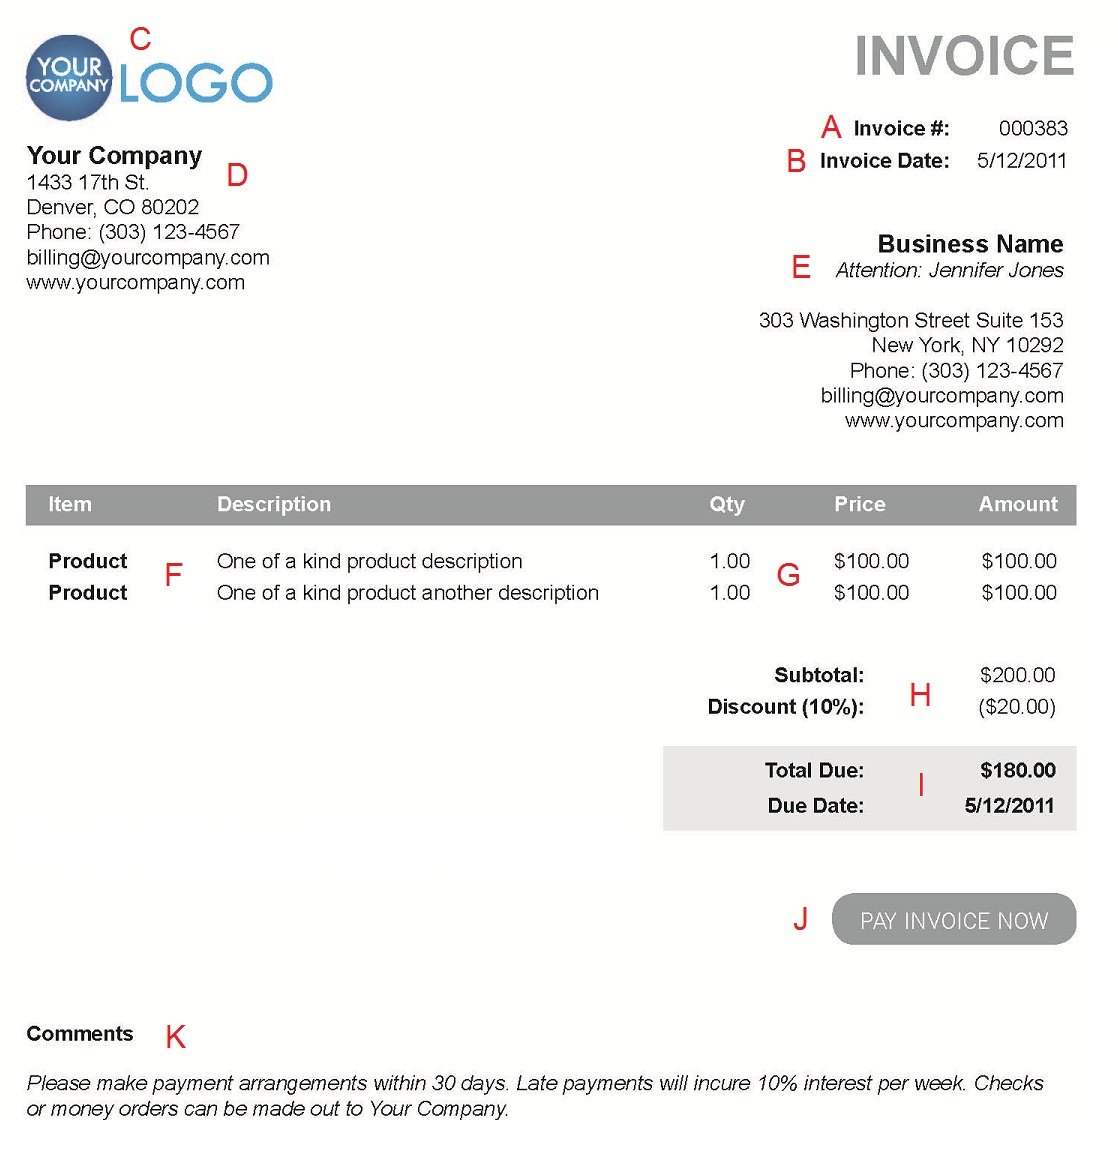 Ultrablogus  Unusual The  Different Sections Of An Electronic Payment Invoice With Goodlooking A  With Awesome California Gross Receipts Tax Also App For Scanning Receipts In Addition Gas Receipt Template And Tracking Number Usps Receipt As Well As Receipt For Services Template Additionally Miscellaneous Receipts Act From Paysimplecom With Ultrablogus  Goodlooking The  Different Sections Of An Electronic Payment Invoice With Awesome A  And Unusual California Gross Receipts Tax Also App For Scanning Receipts In Addition Gas Receipt Template From Paysimplecom